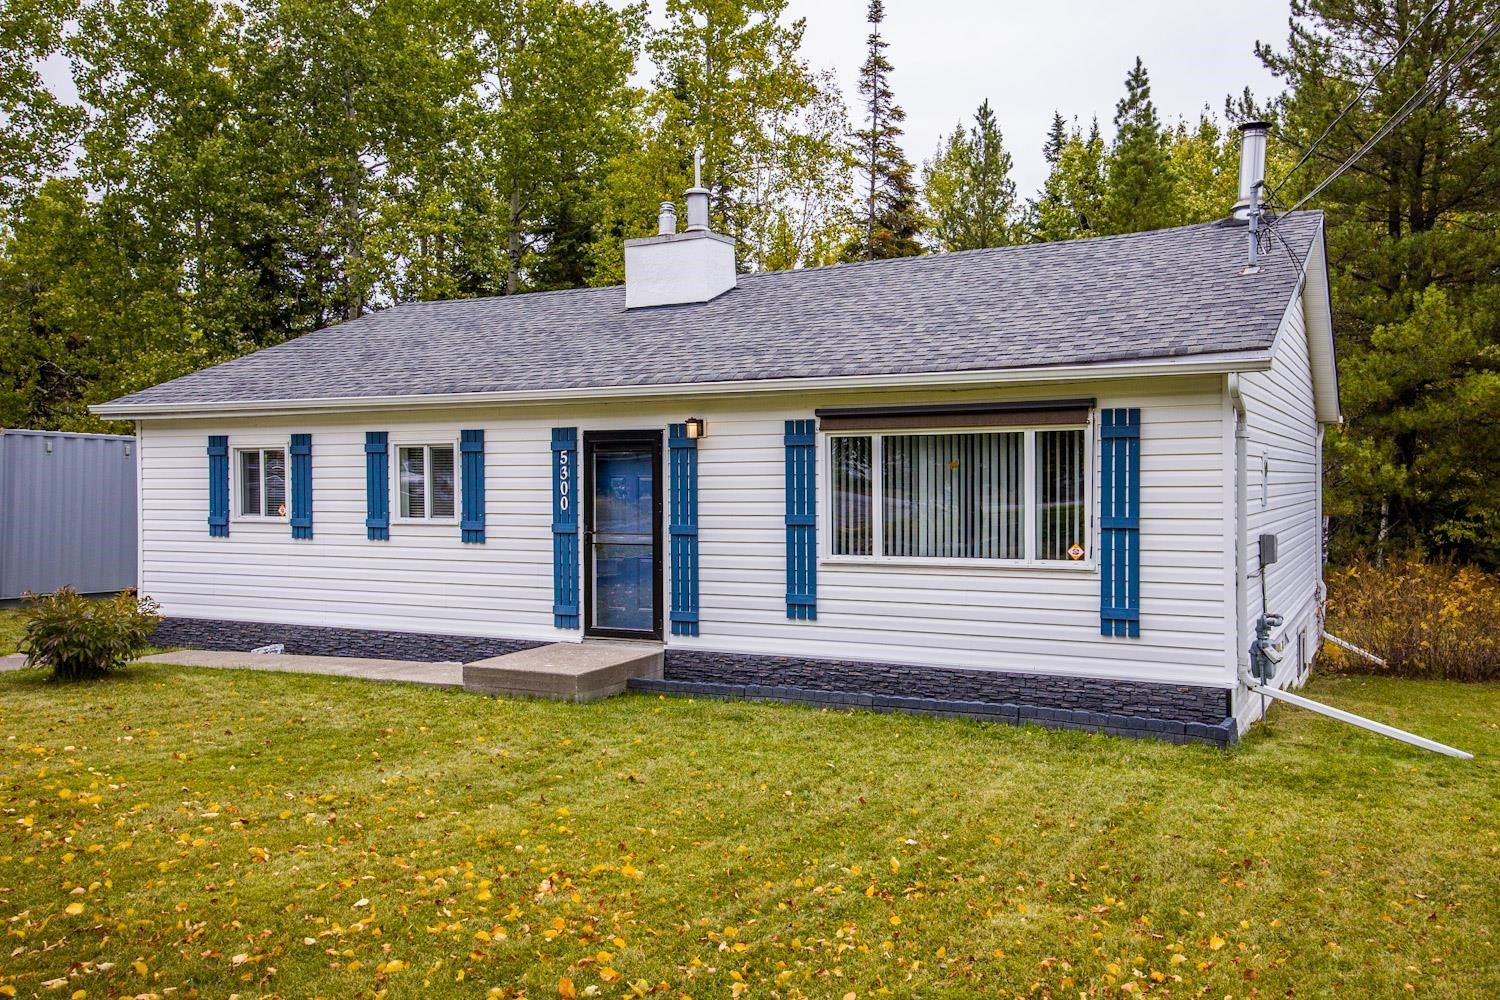 Main Photo: 5300 GRAVES Road in Prince George: North Blackburn House for sale (PG City South East (Zone 75))  : MLS®# R2620046